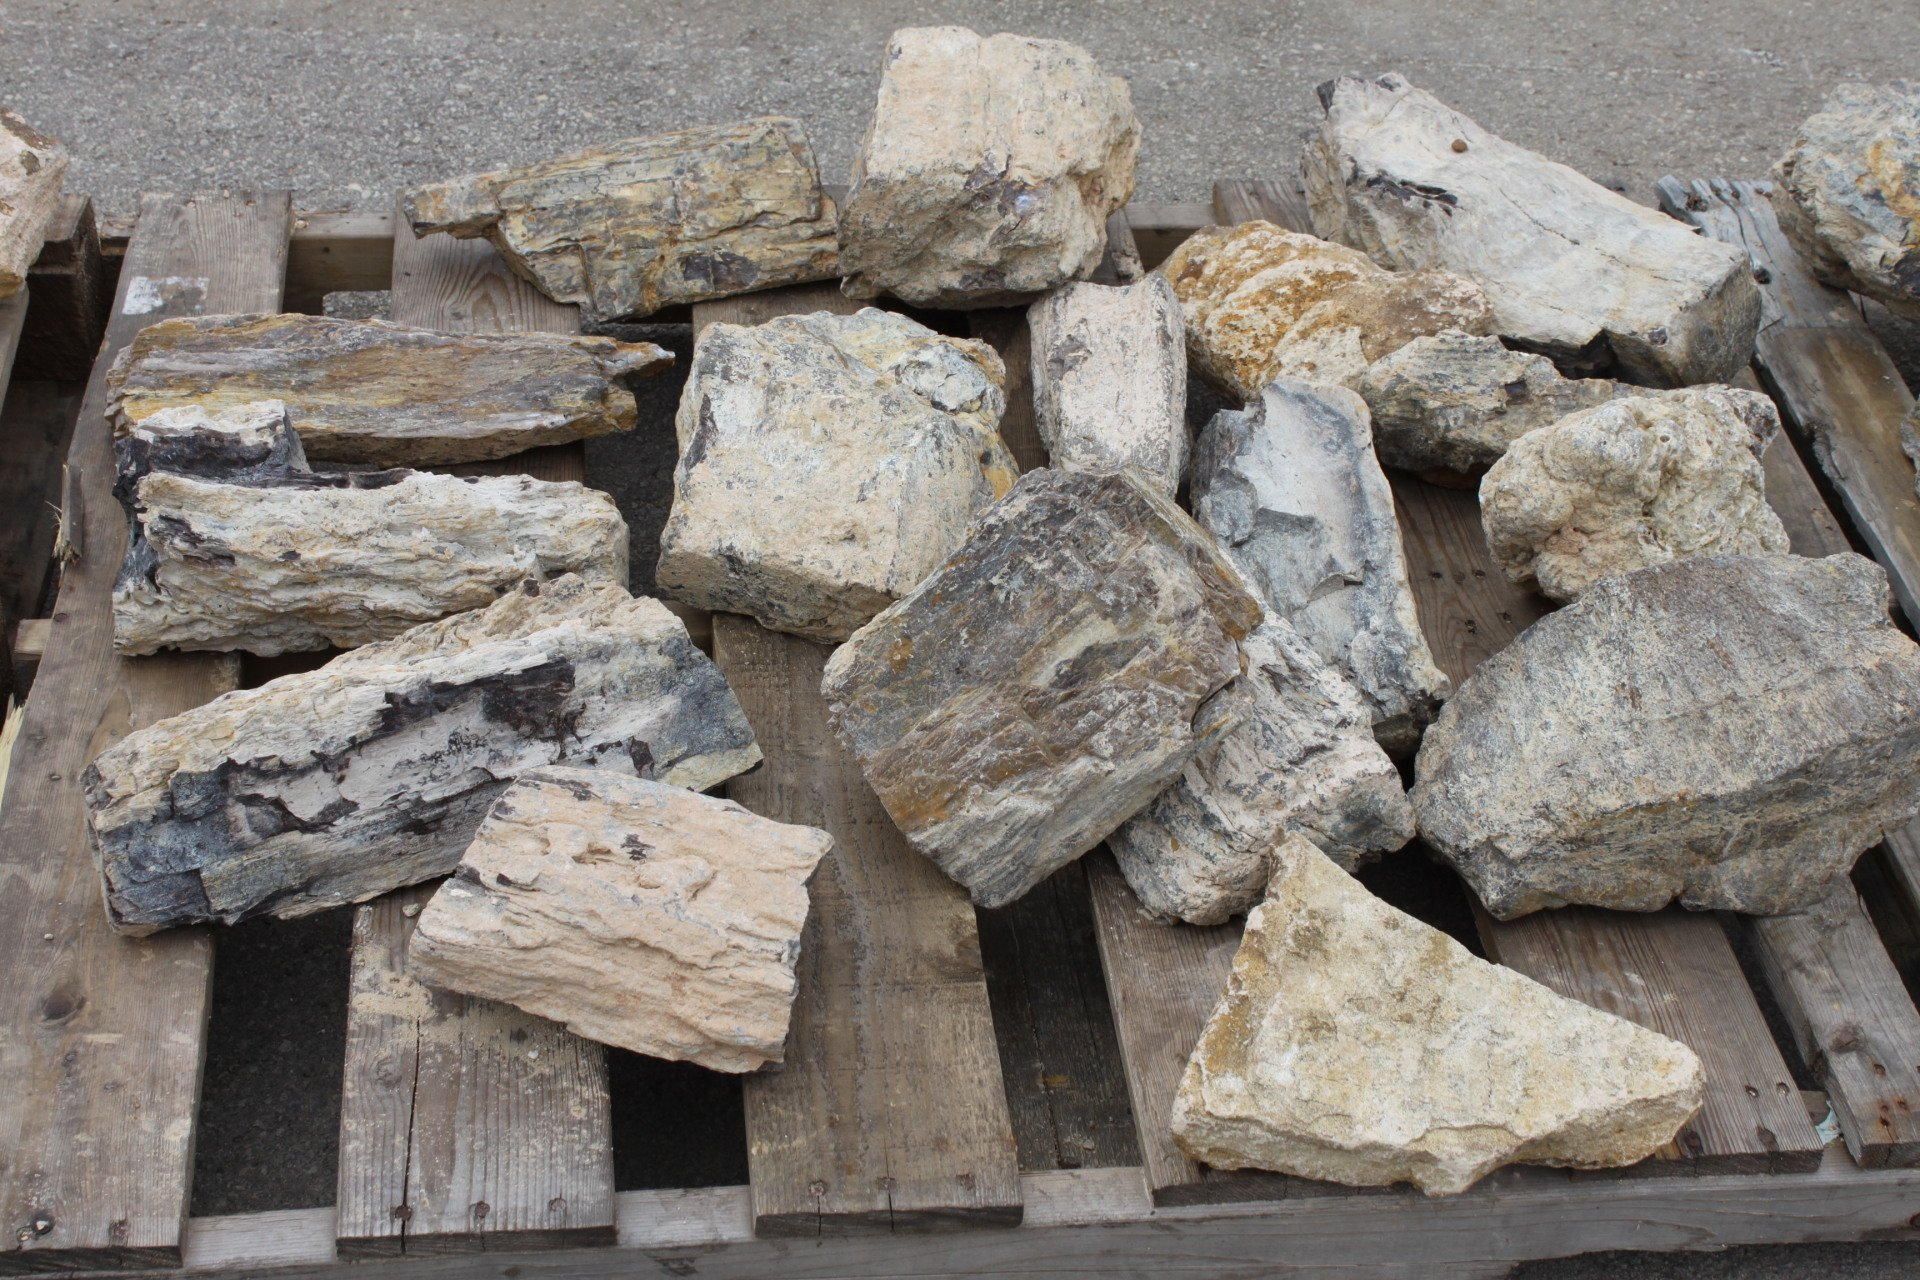 Petrified Wood Aquarium Supplies In San Antonio Texas